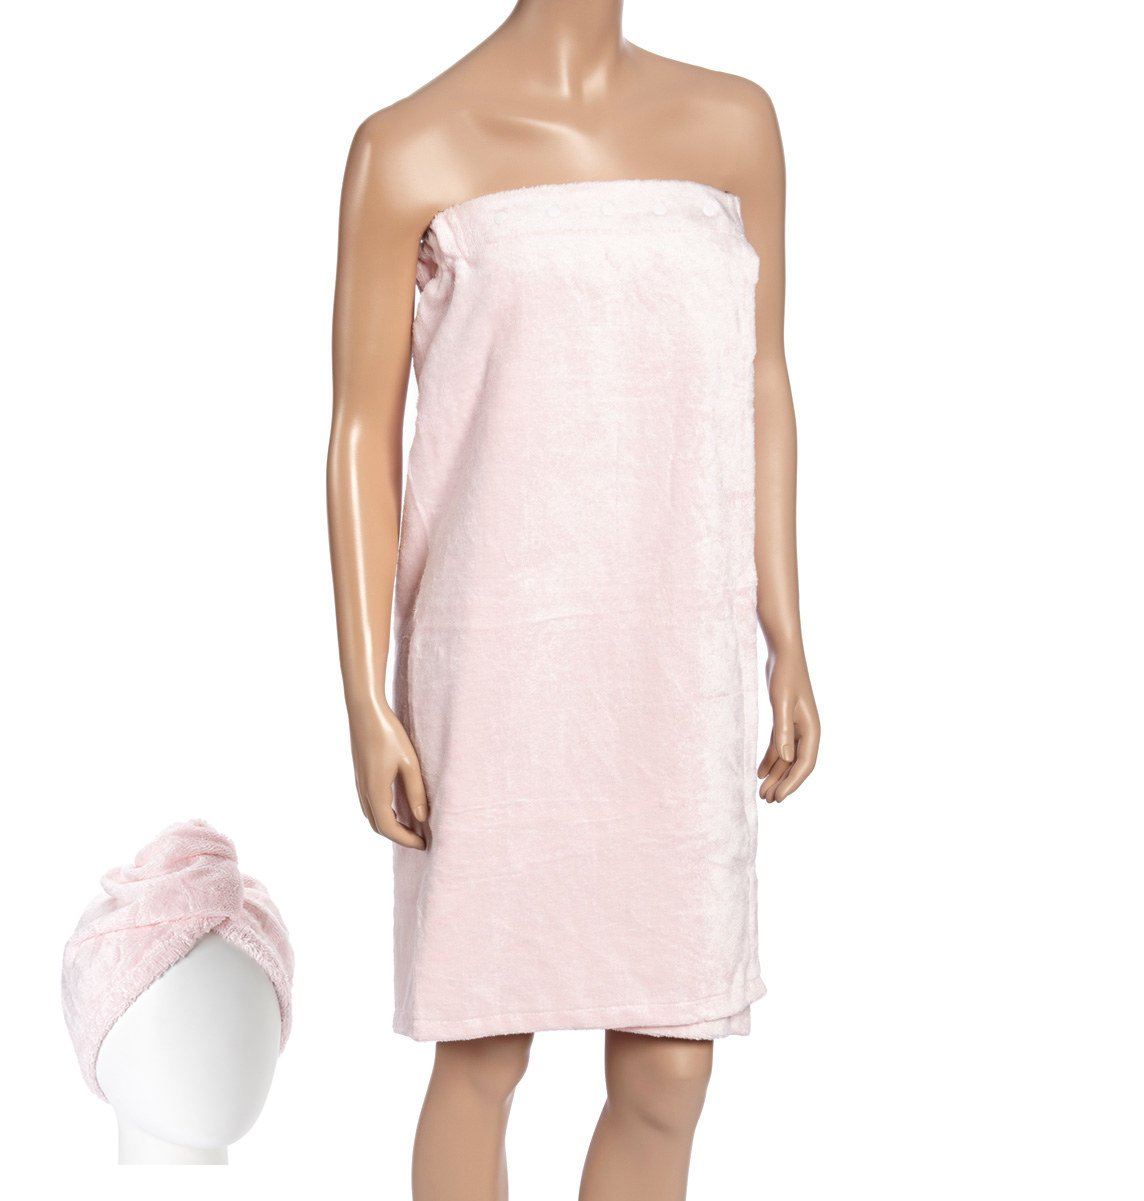 Fabbrica Home Natural Rayon Made From Bamboo Spa Bath Wrap Shower Skirt and Hair Drying Turban (Available in 4 Colors) (One-size, Pink) by Fabbrica Home